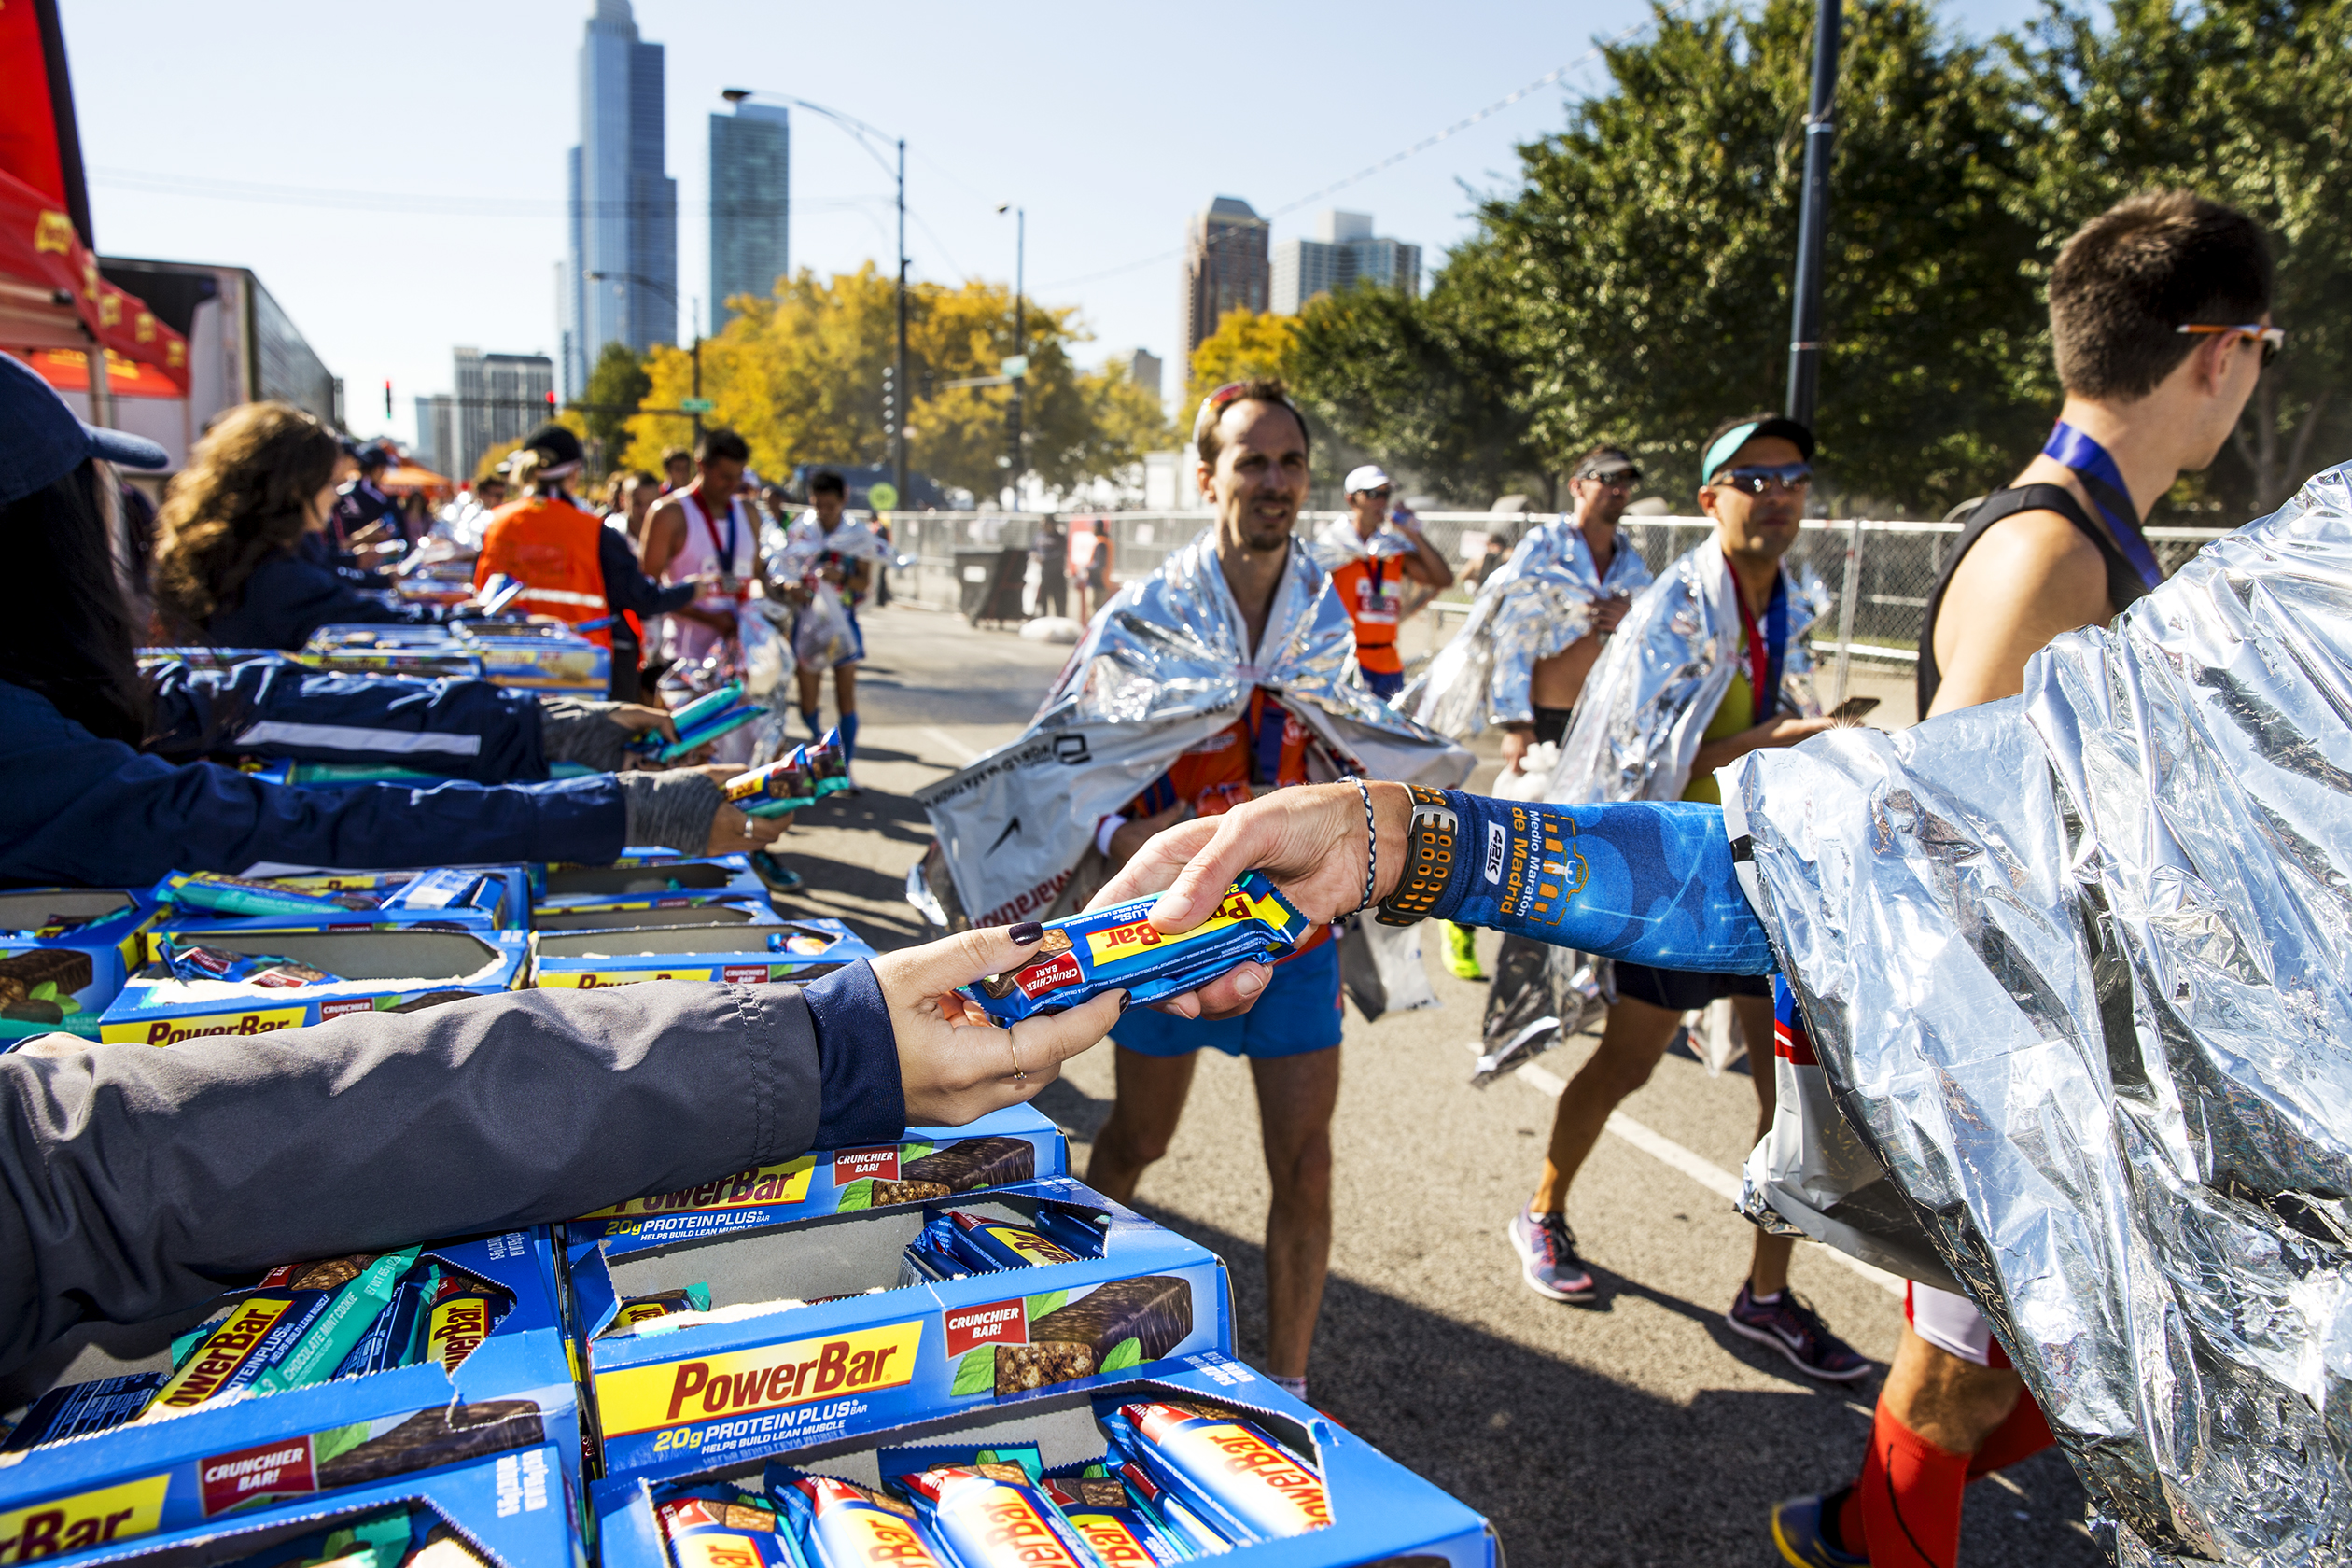 PowerBar was one of dozens of sponsors for the Bank of America Chicago Marathon in October.